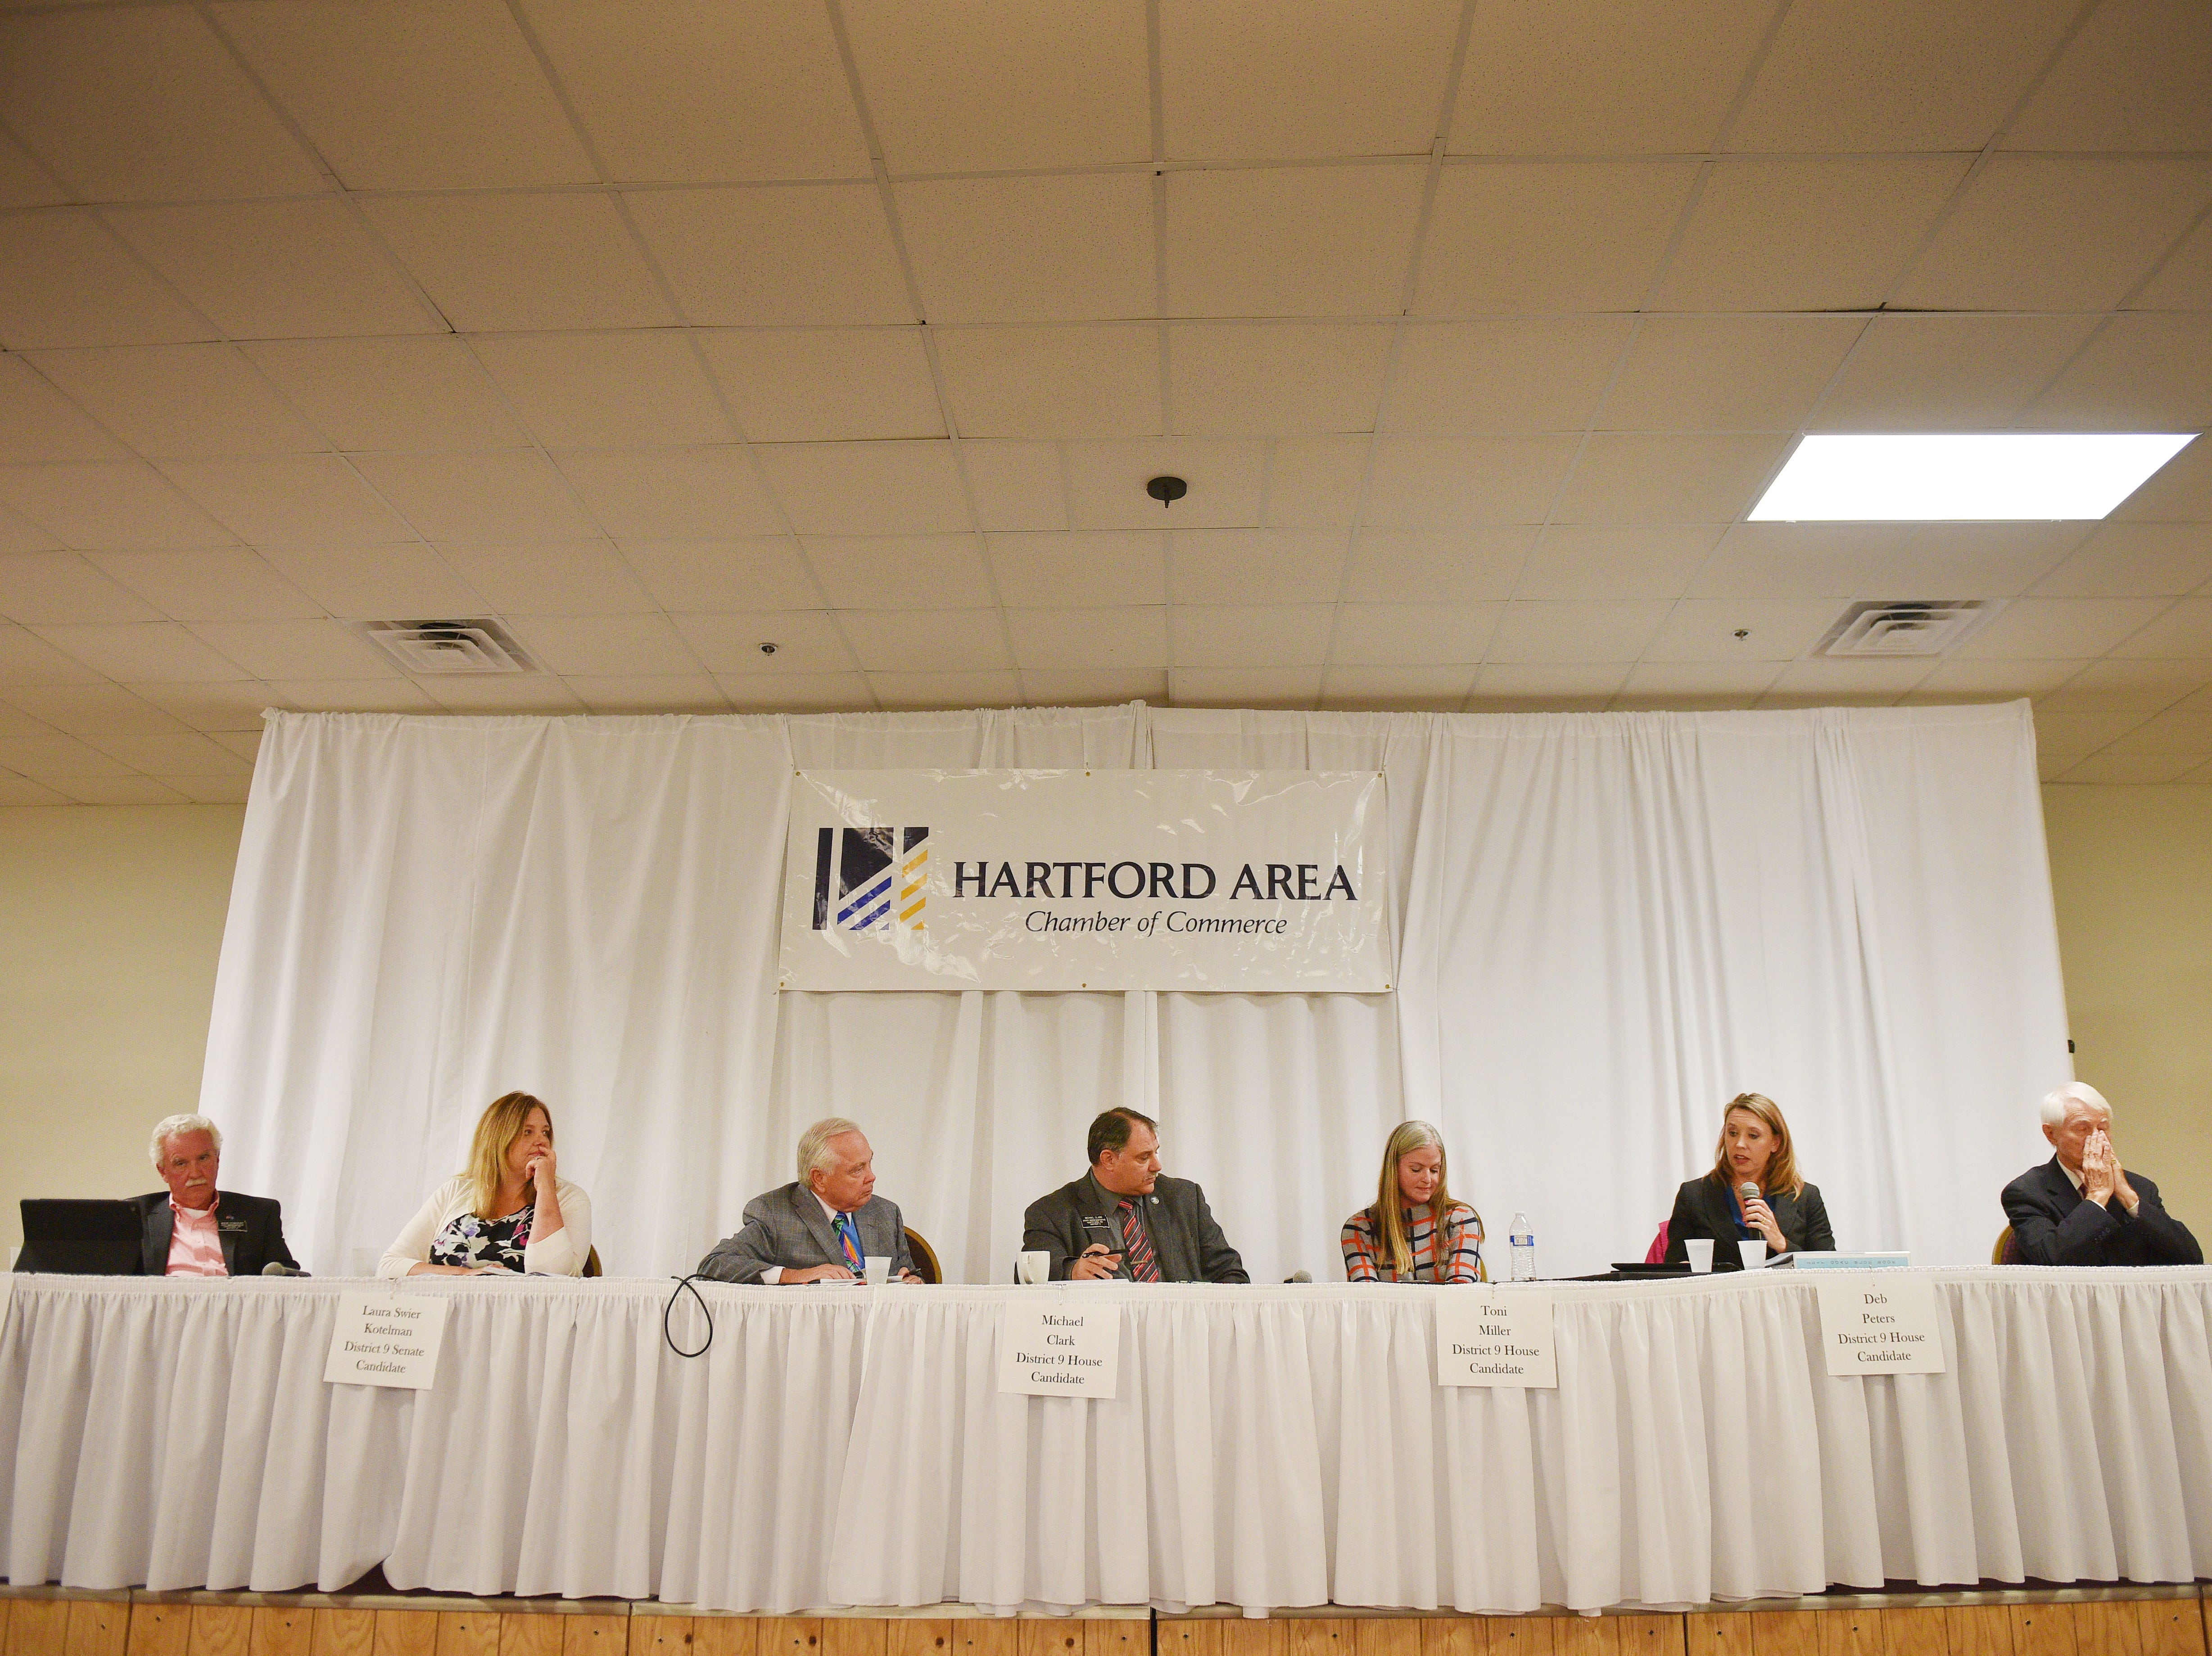 Legislative candidates face questions from constituents Thursday, Sept. 27, at Dakota Plains Event Center in Hartford. Candidates discussed Initiated Measure 22, health care and spending priorities.